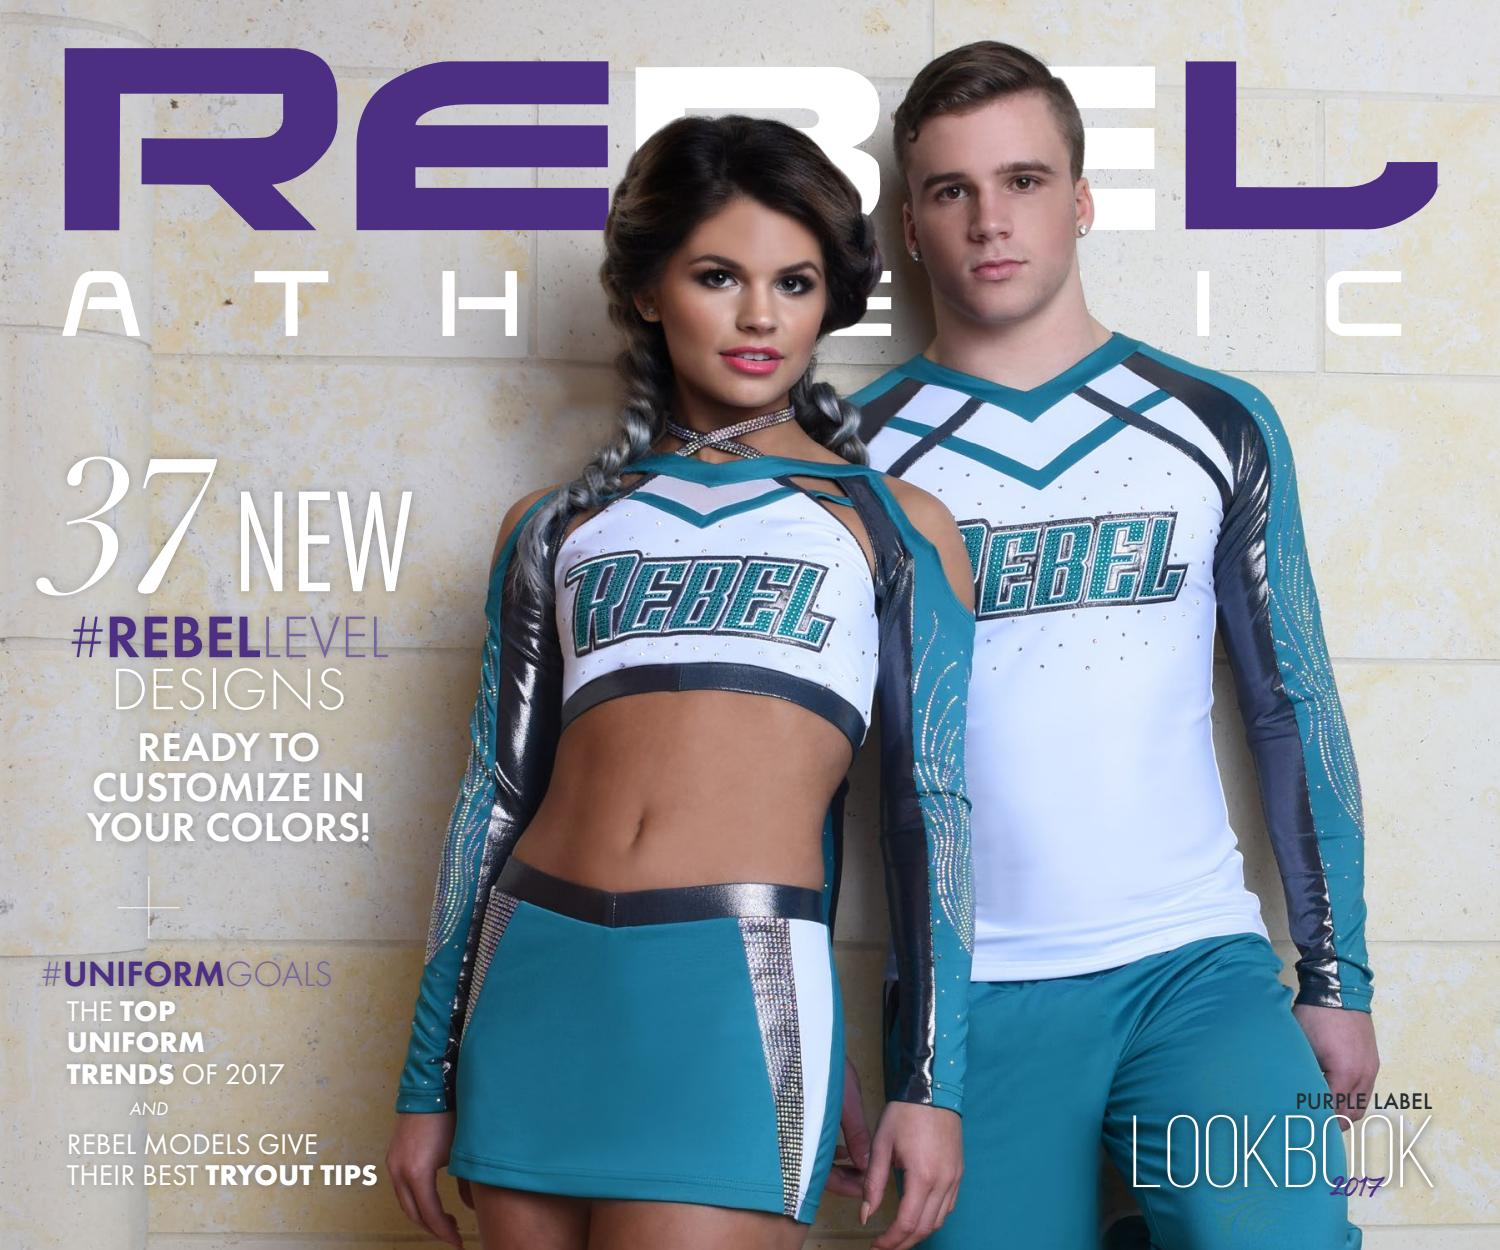 Book Cover School Uniforms : Rebel athletic purple label lookbook by